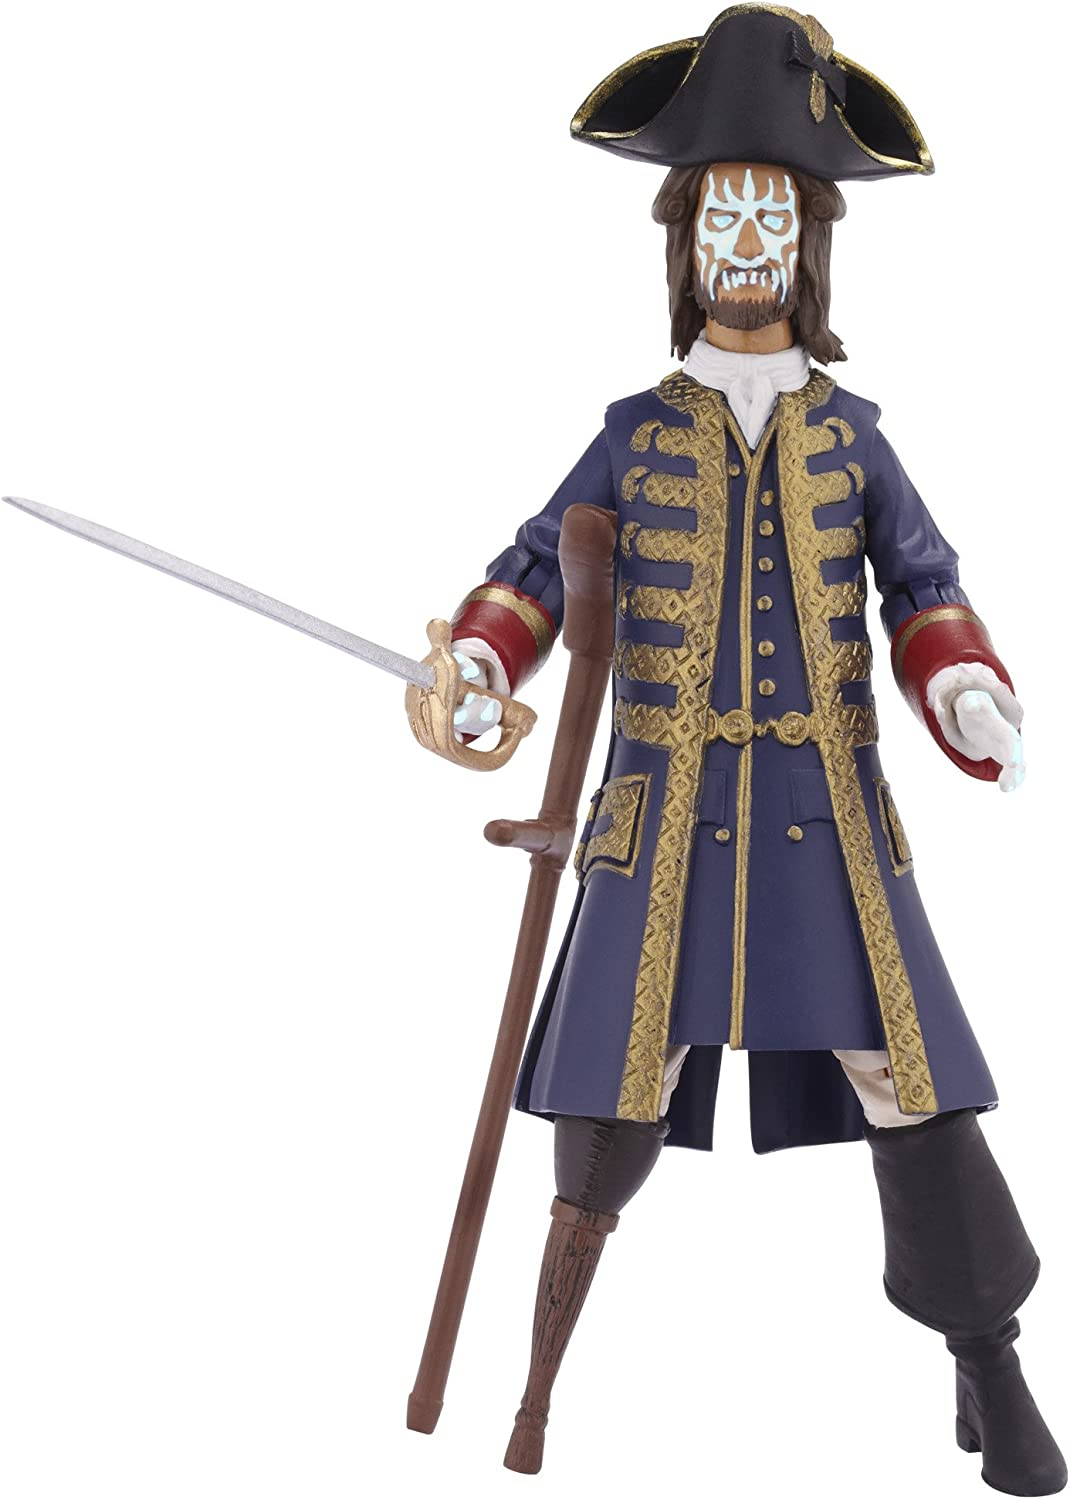 Dead Sea Sword Pirate Toy Plastic Costume Accessory